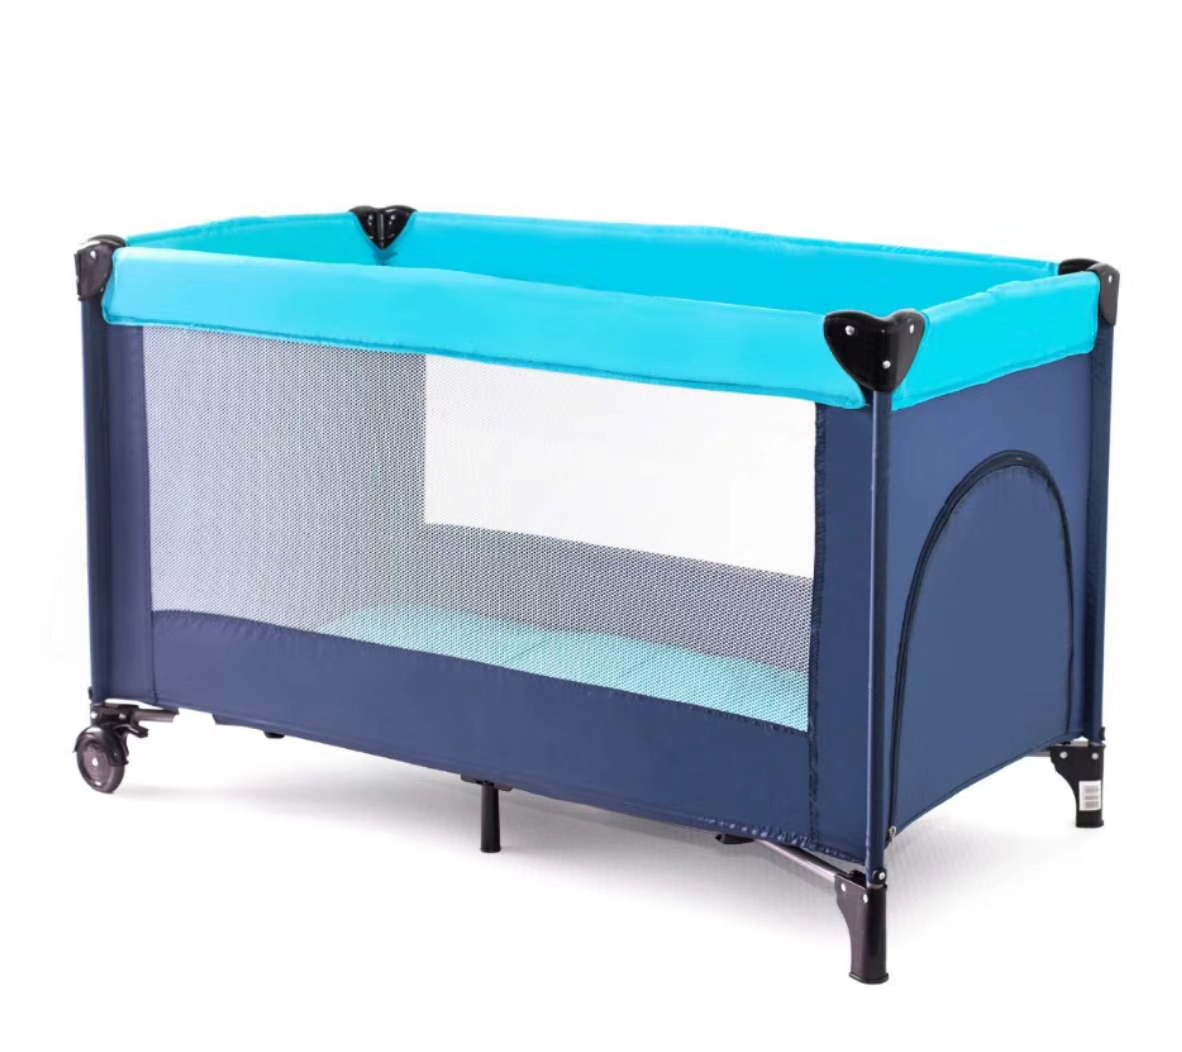 Crib Multifunctional Detachable Portable Folding Baby Game Cot Kids Bed Toddler Bed Baby Furniture